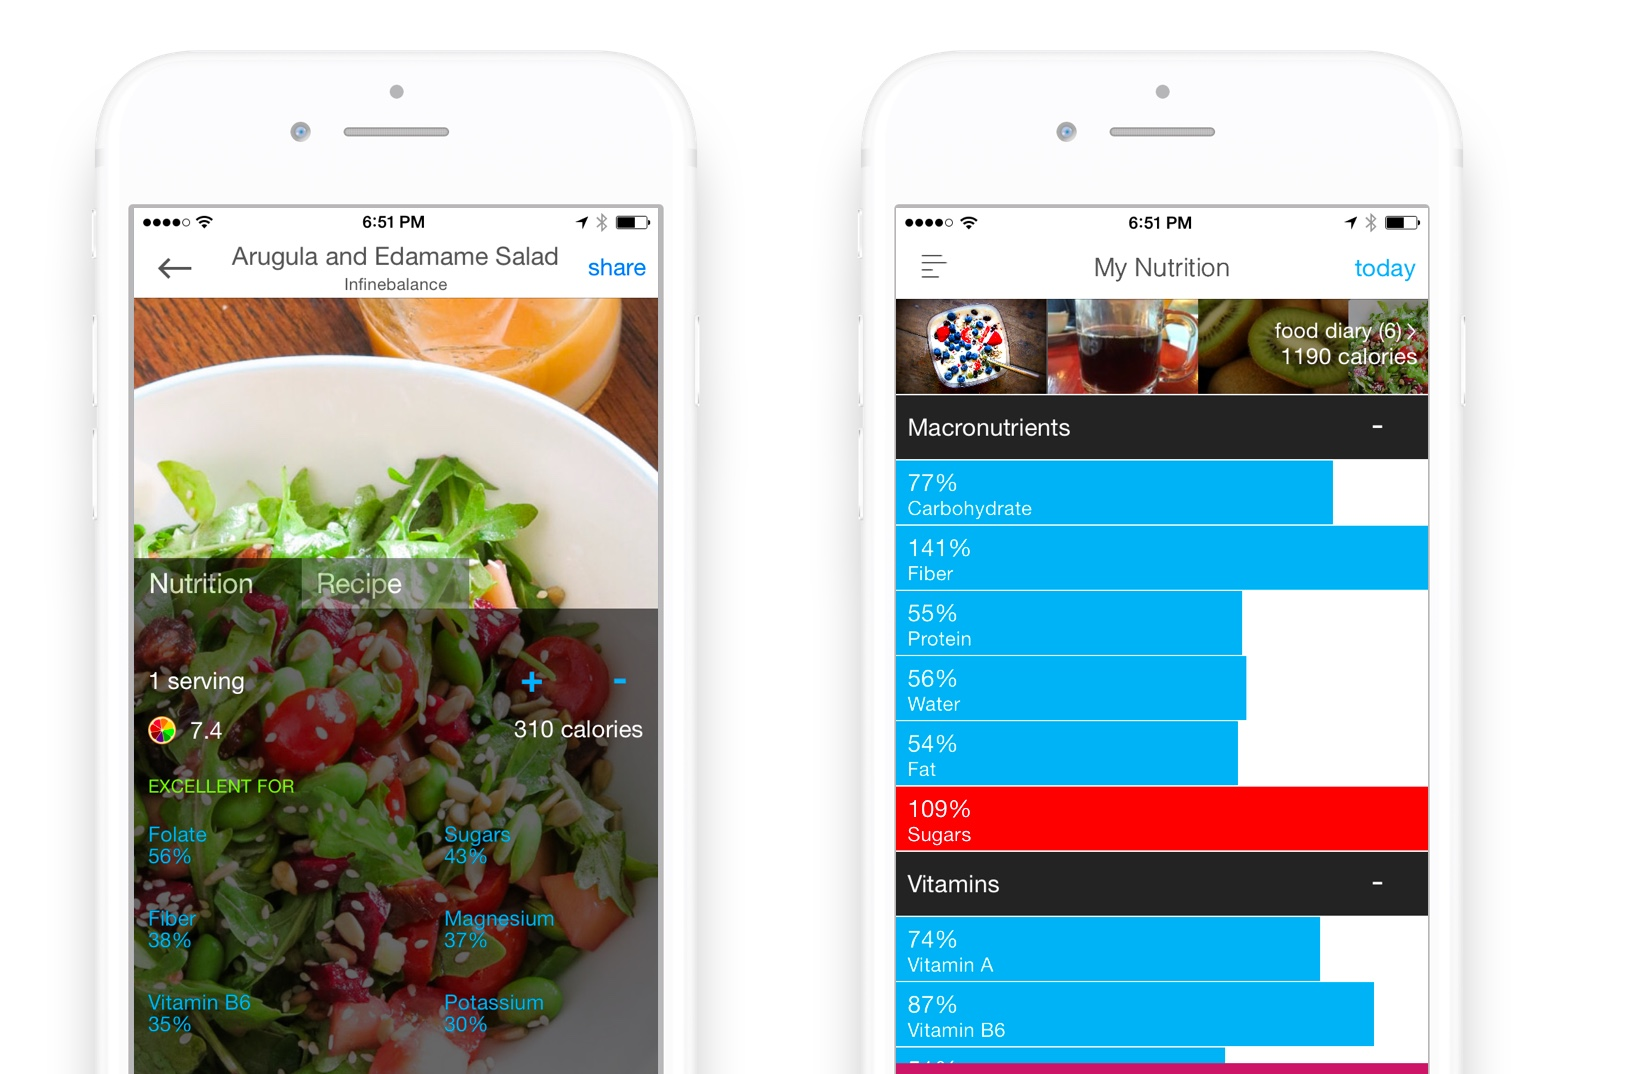 Recipe nutrition and tracking micronutrients on the Wholesome app